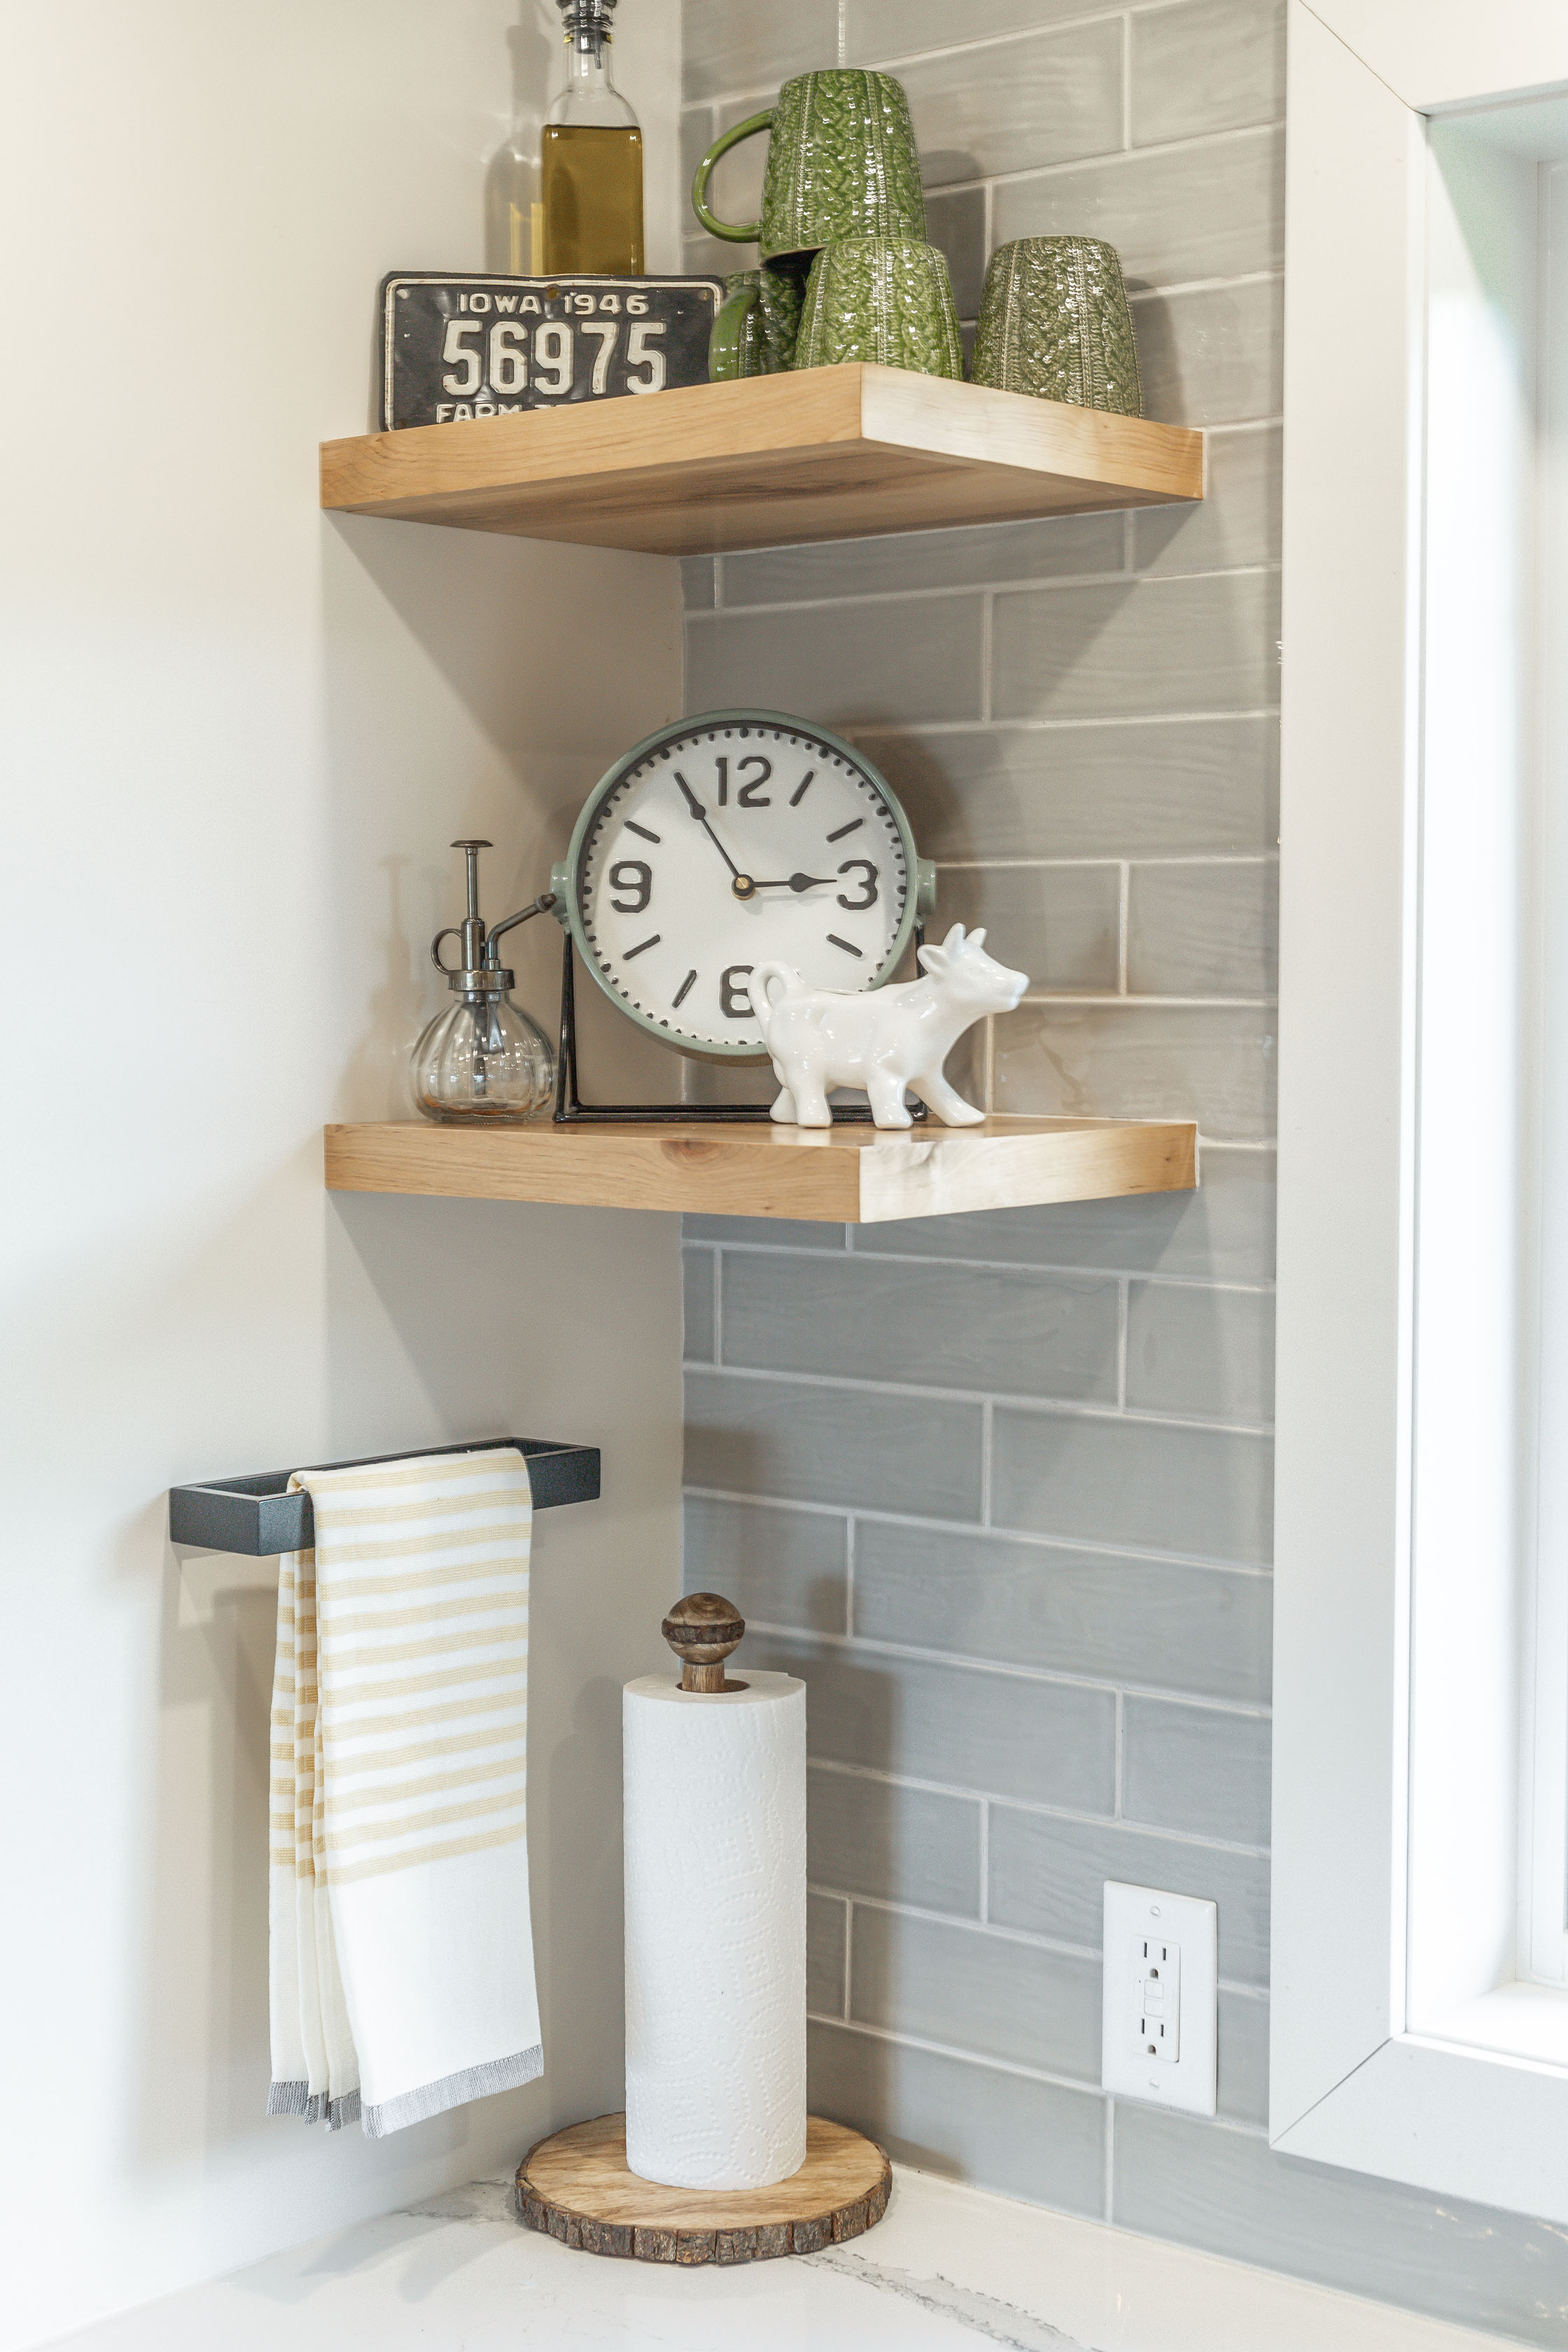 RESIZEReviveHomeMainLivingSpace-77